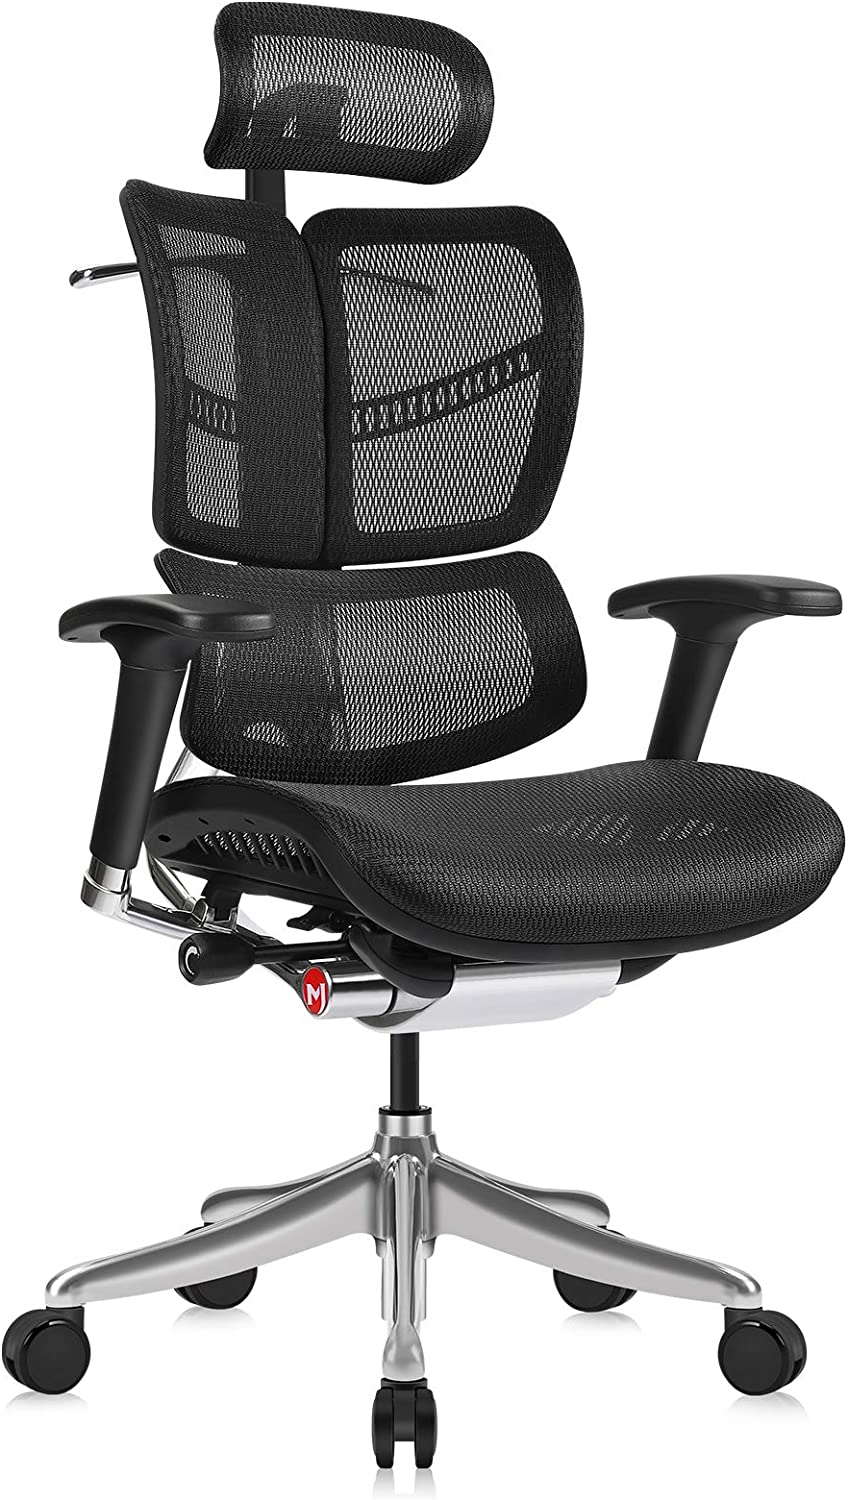 Ergonomic Office Chair with Headrest Adj and Tilt Limiter | Backrest Height Adj | Seat Depth Adj | 3-Dimensional Dynamic Backrest and Lumbar Support | Aluminum Frame/Base with Standard Carpet Casters